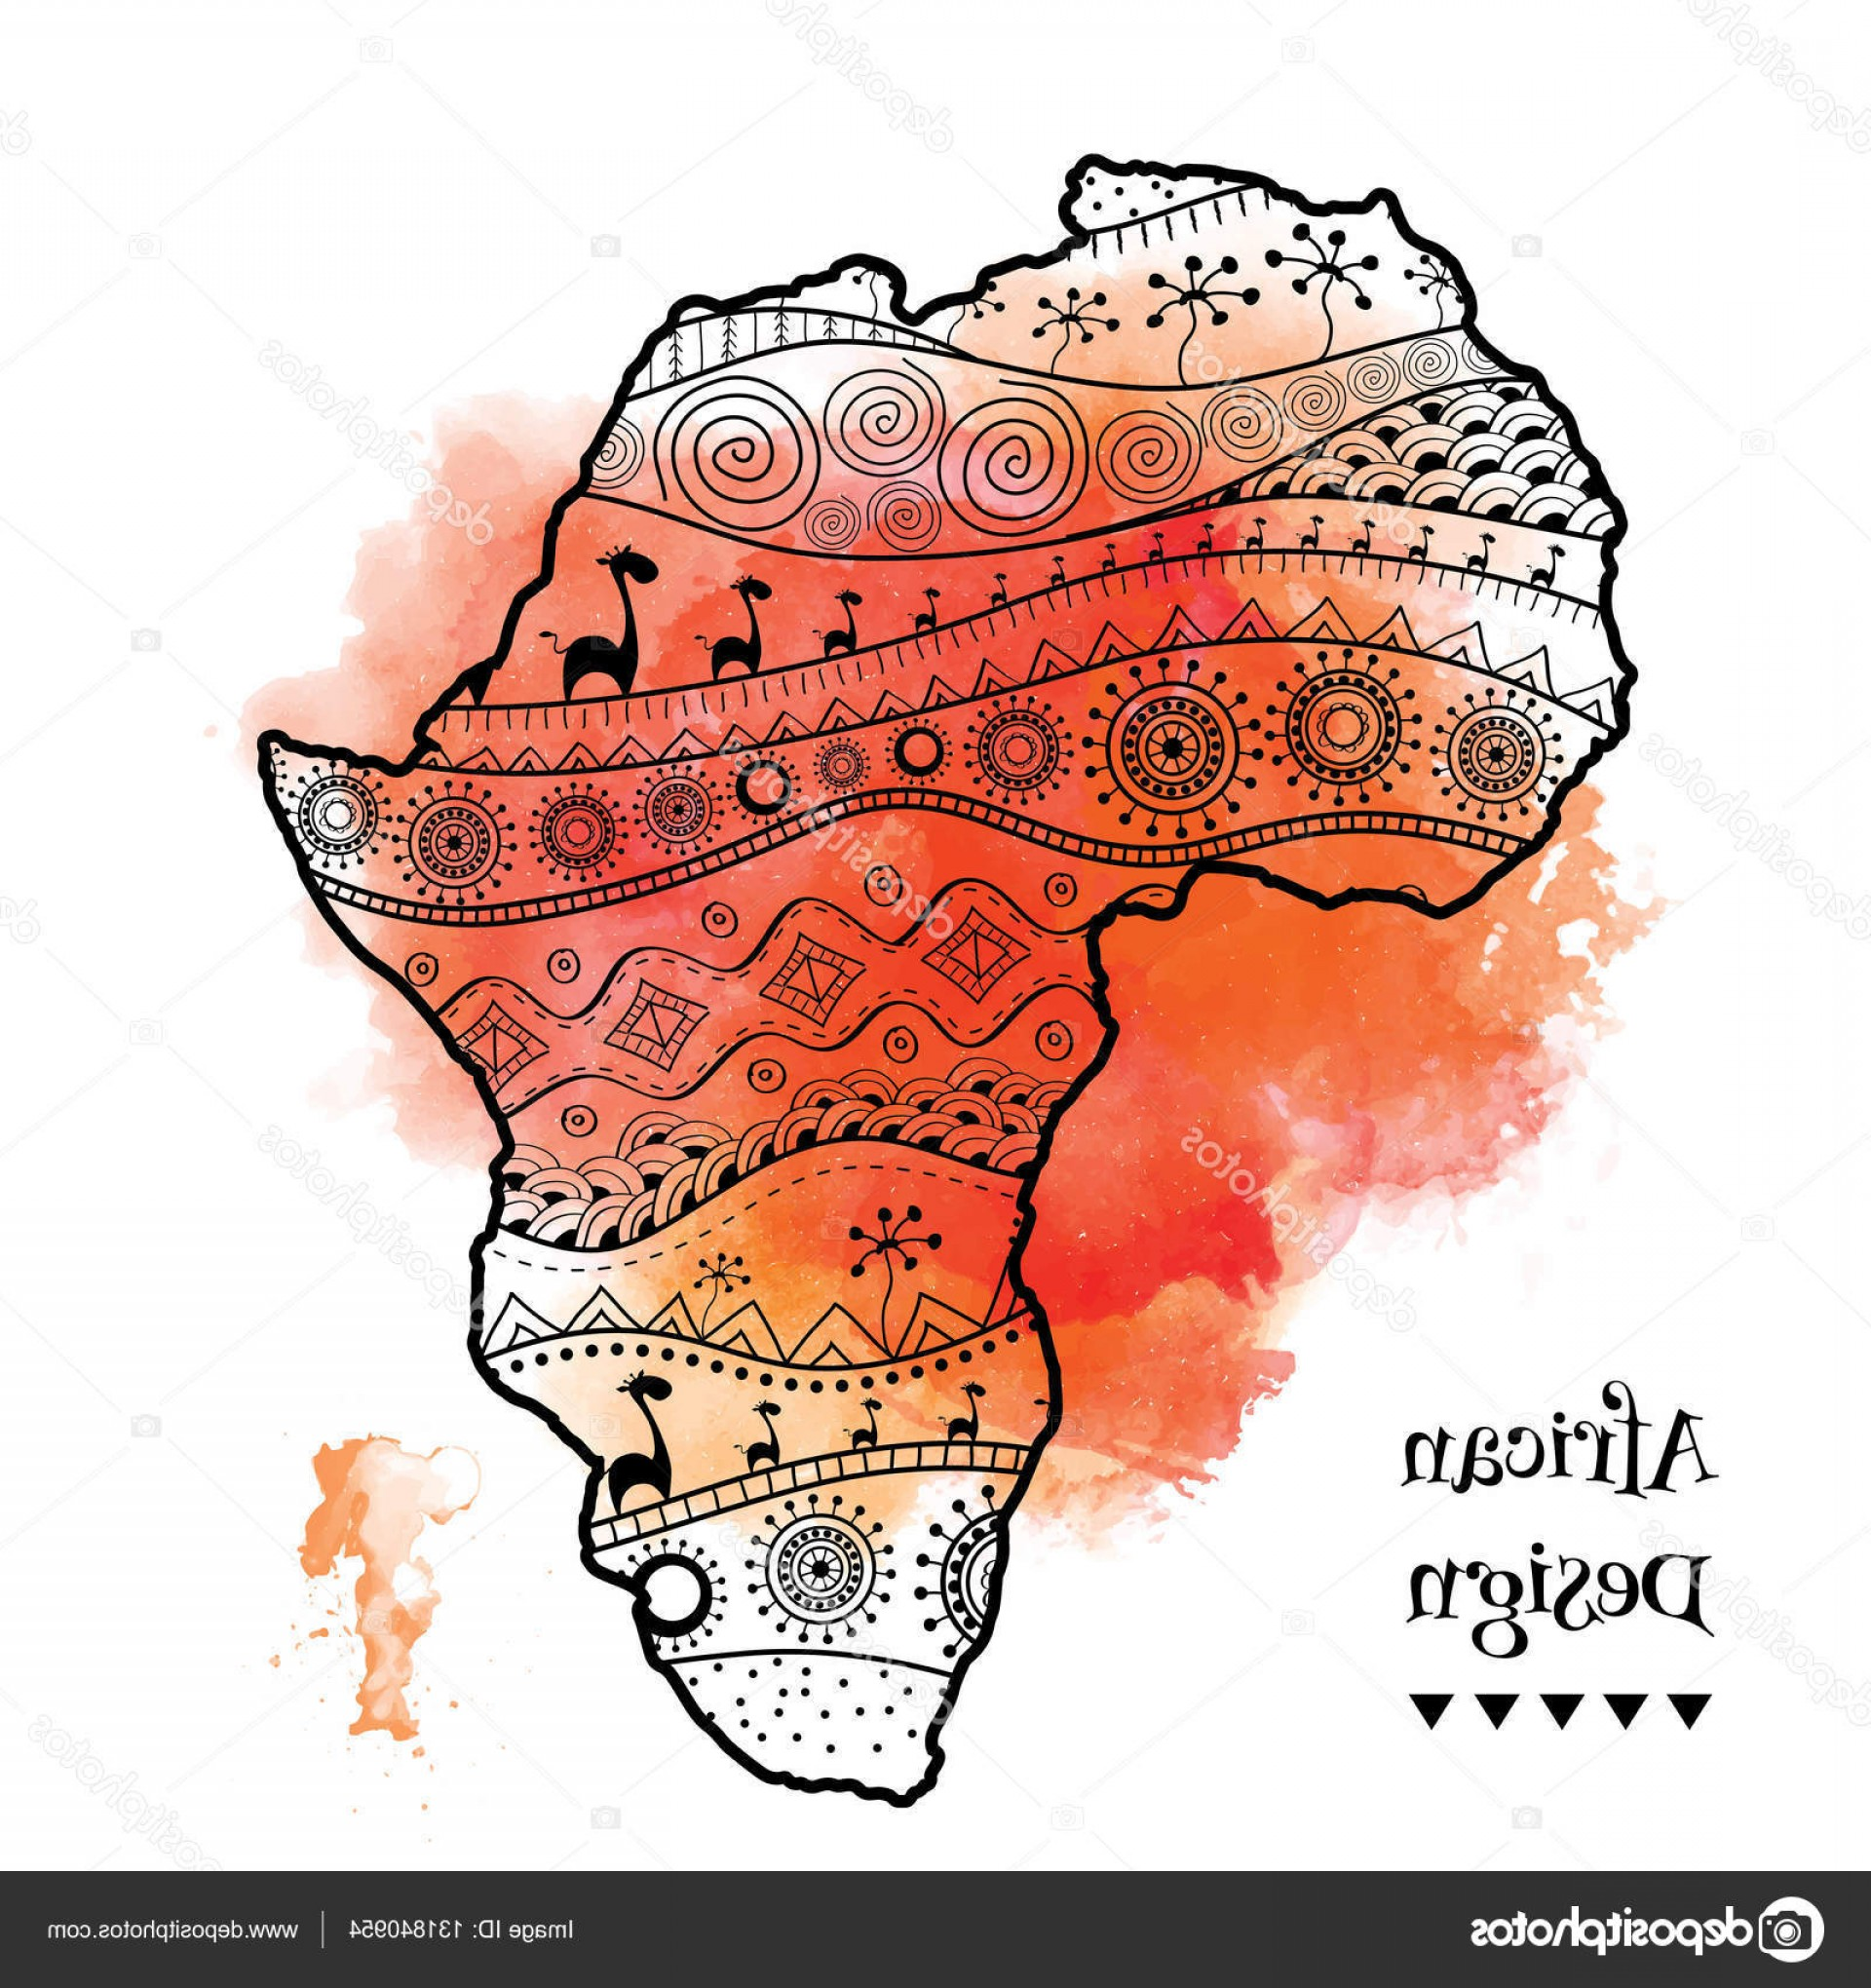 BG Vector Map: Stock Illustration Textured Vector Map Of Africa